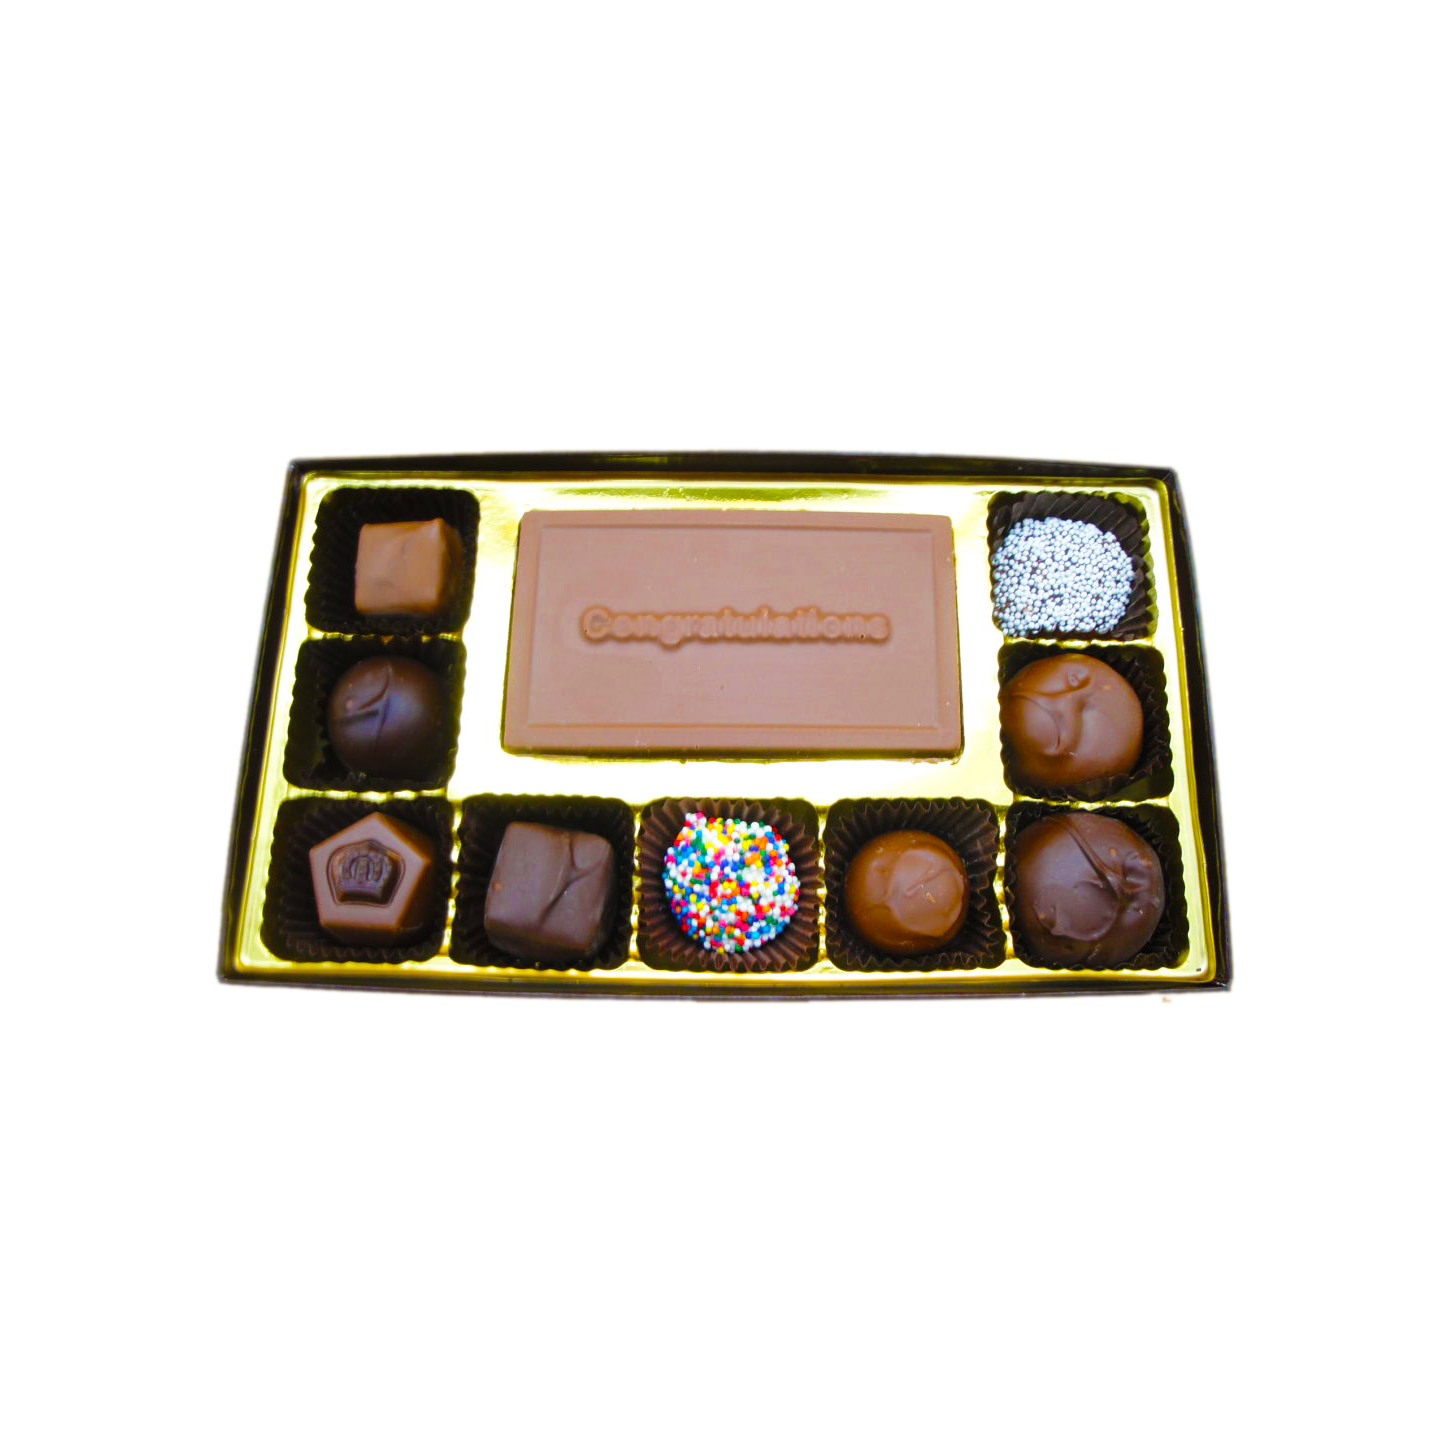 congratulations 10 pc gift box